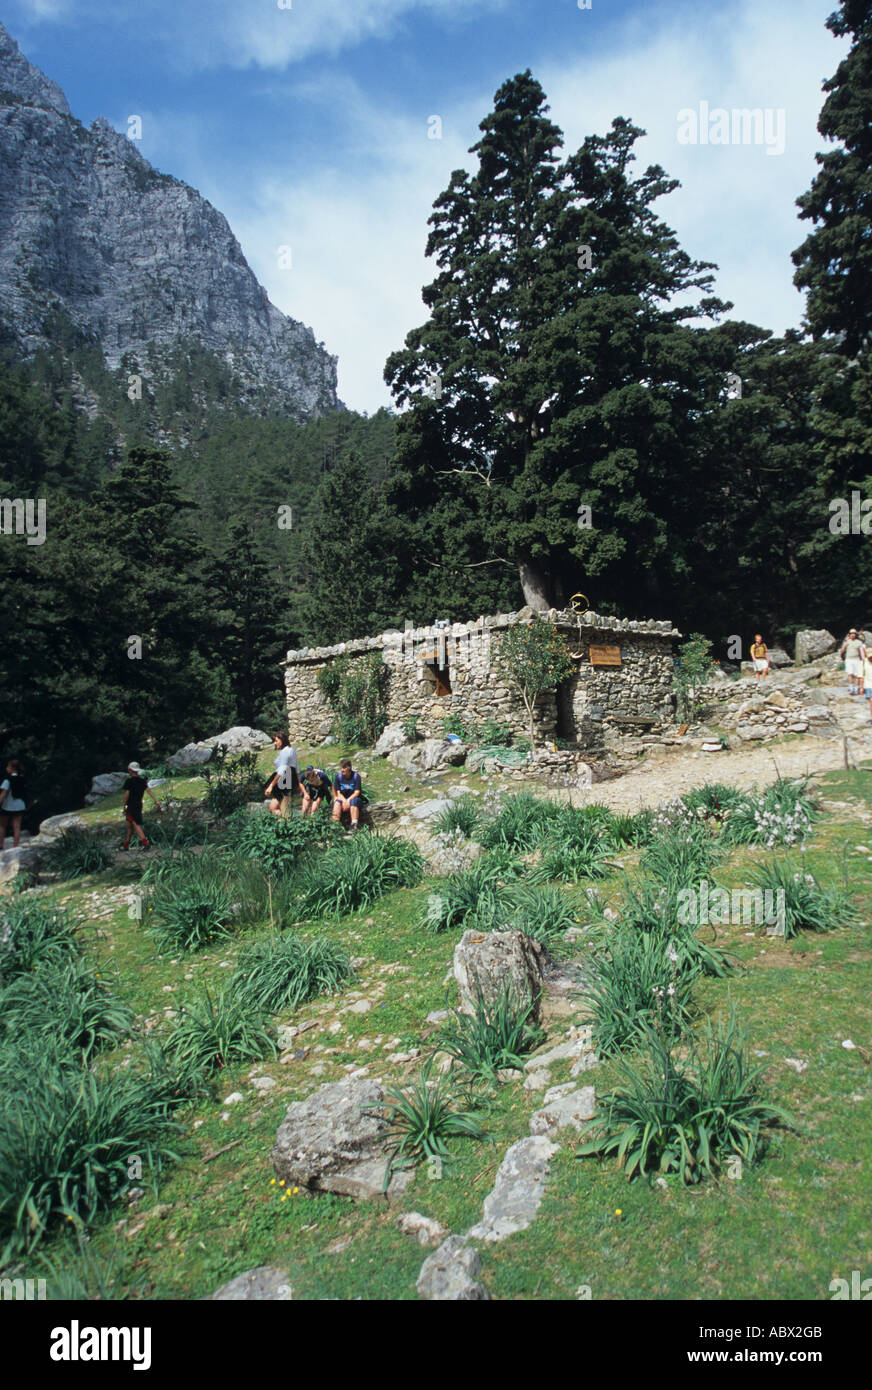 Greece Kreta Samaria Schlucht Ravine Gorge Valley Stock Photo